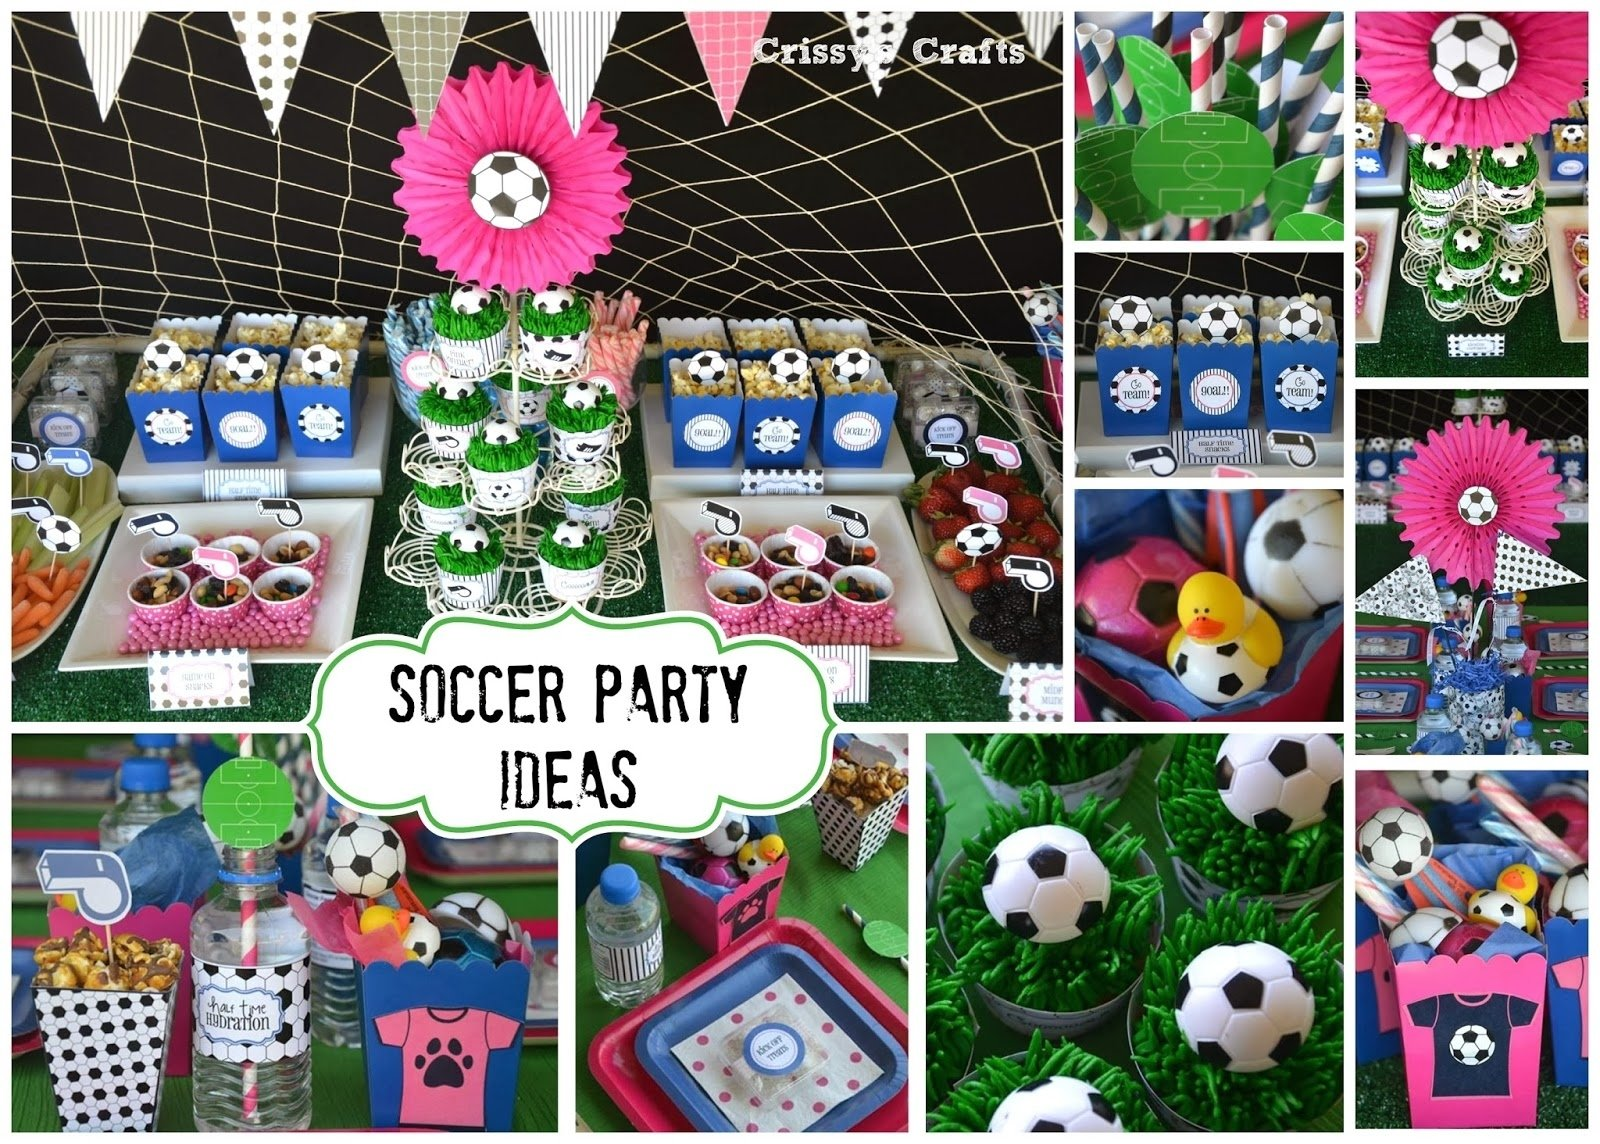 crissy's crafts: end of the season soccer party